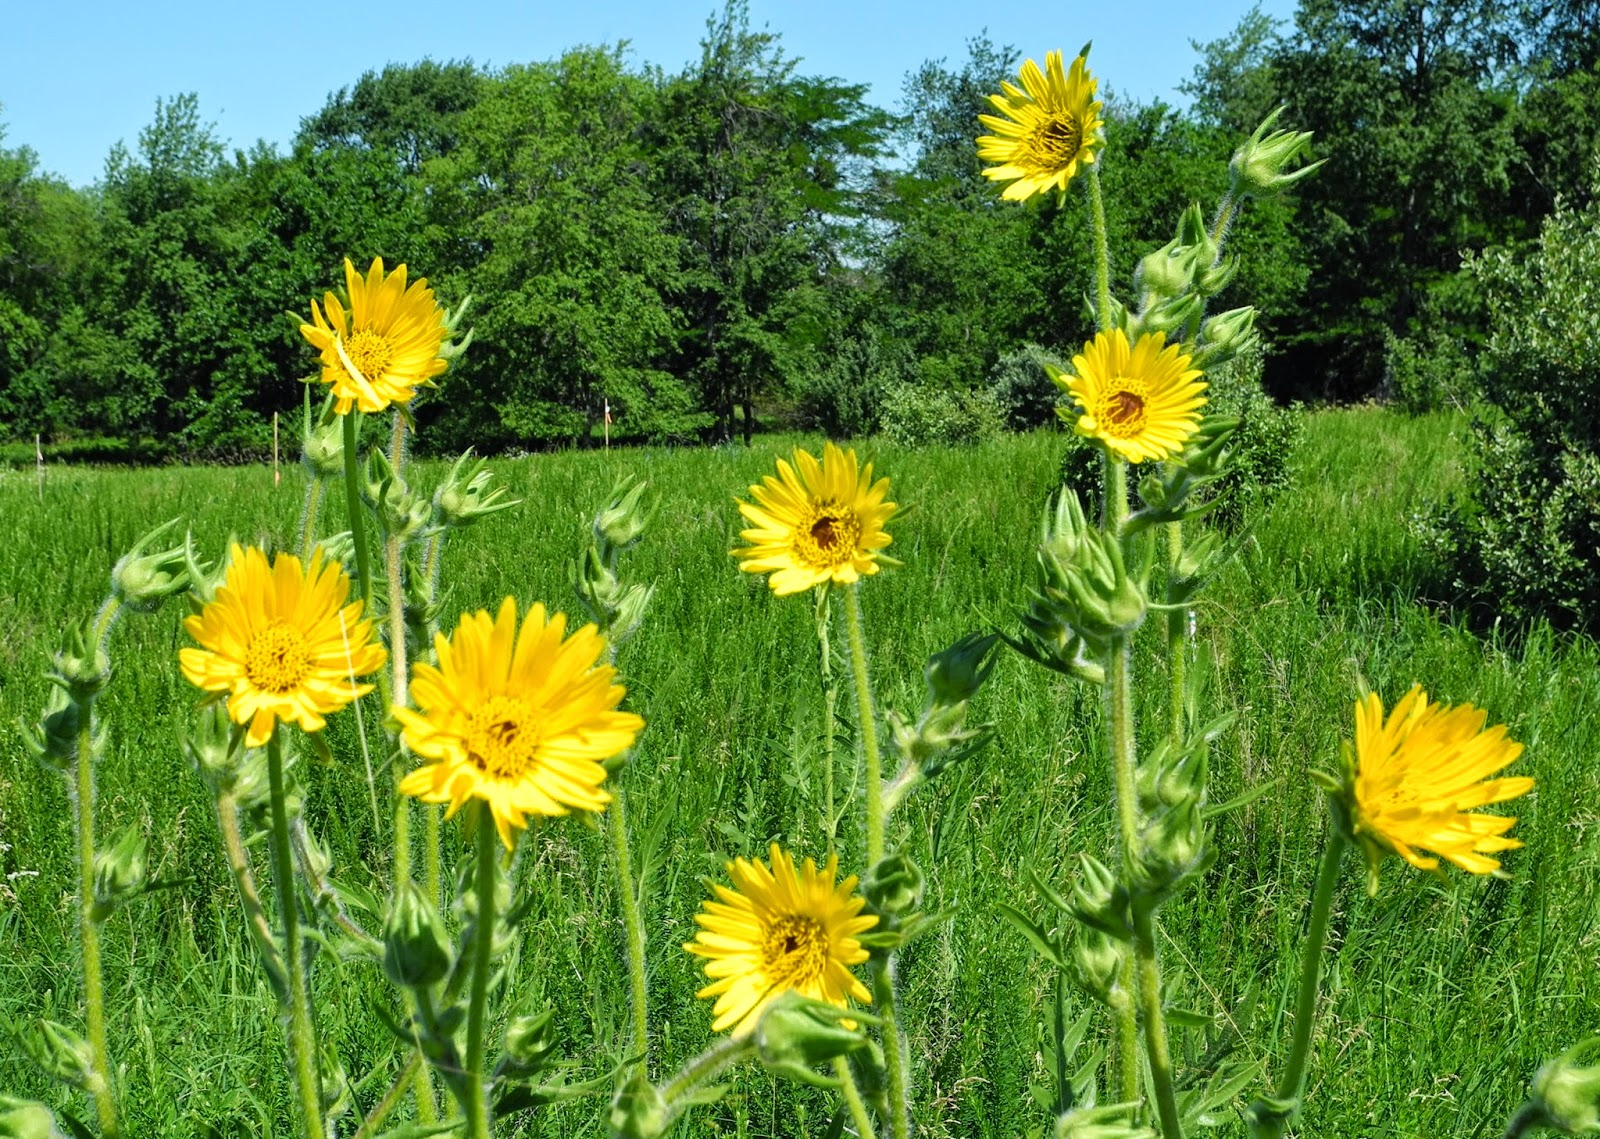 Http Phytophactor Fieldofscience Com 2013 06 Friday Fabulous Flower Compass Plant Html